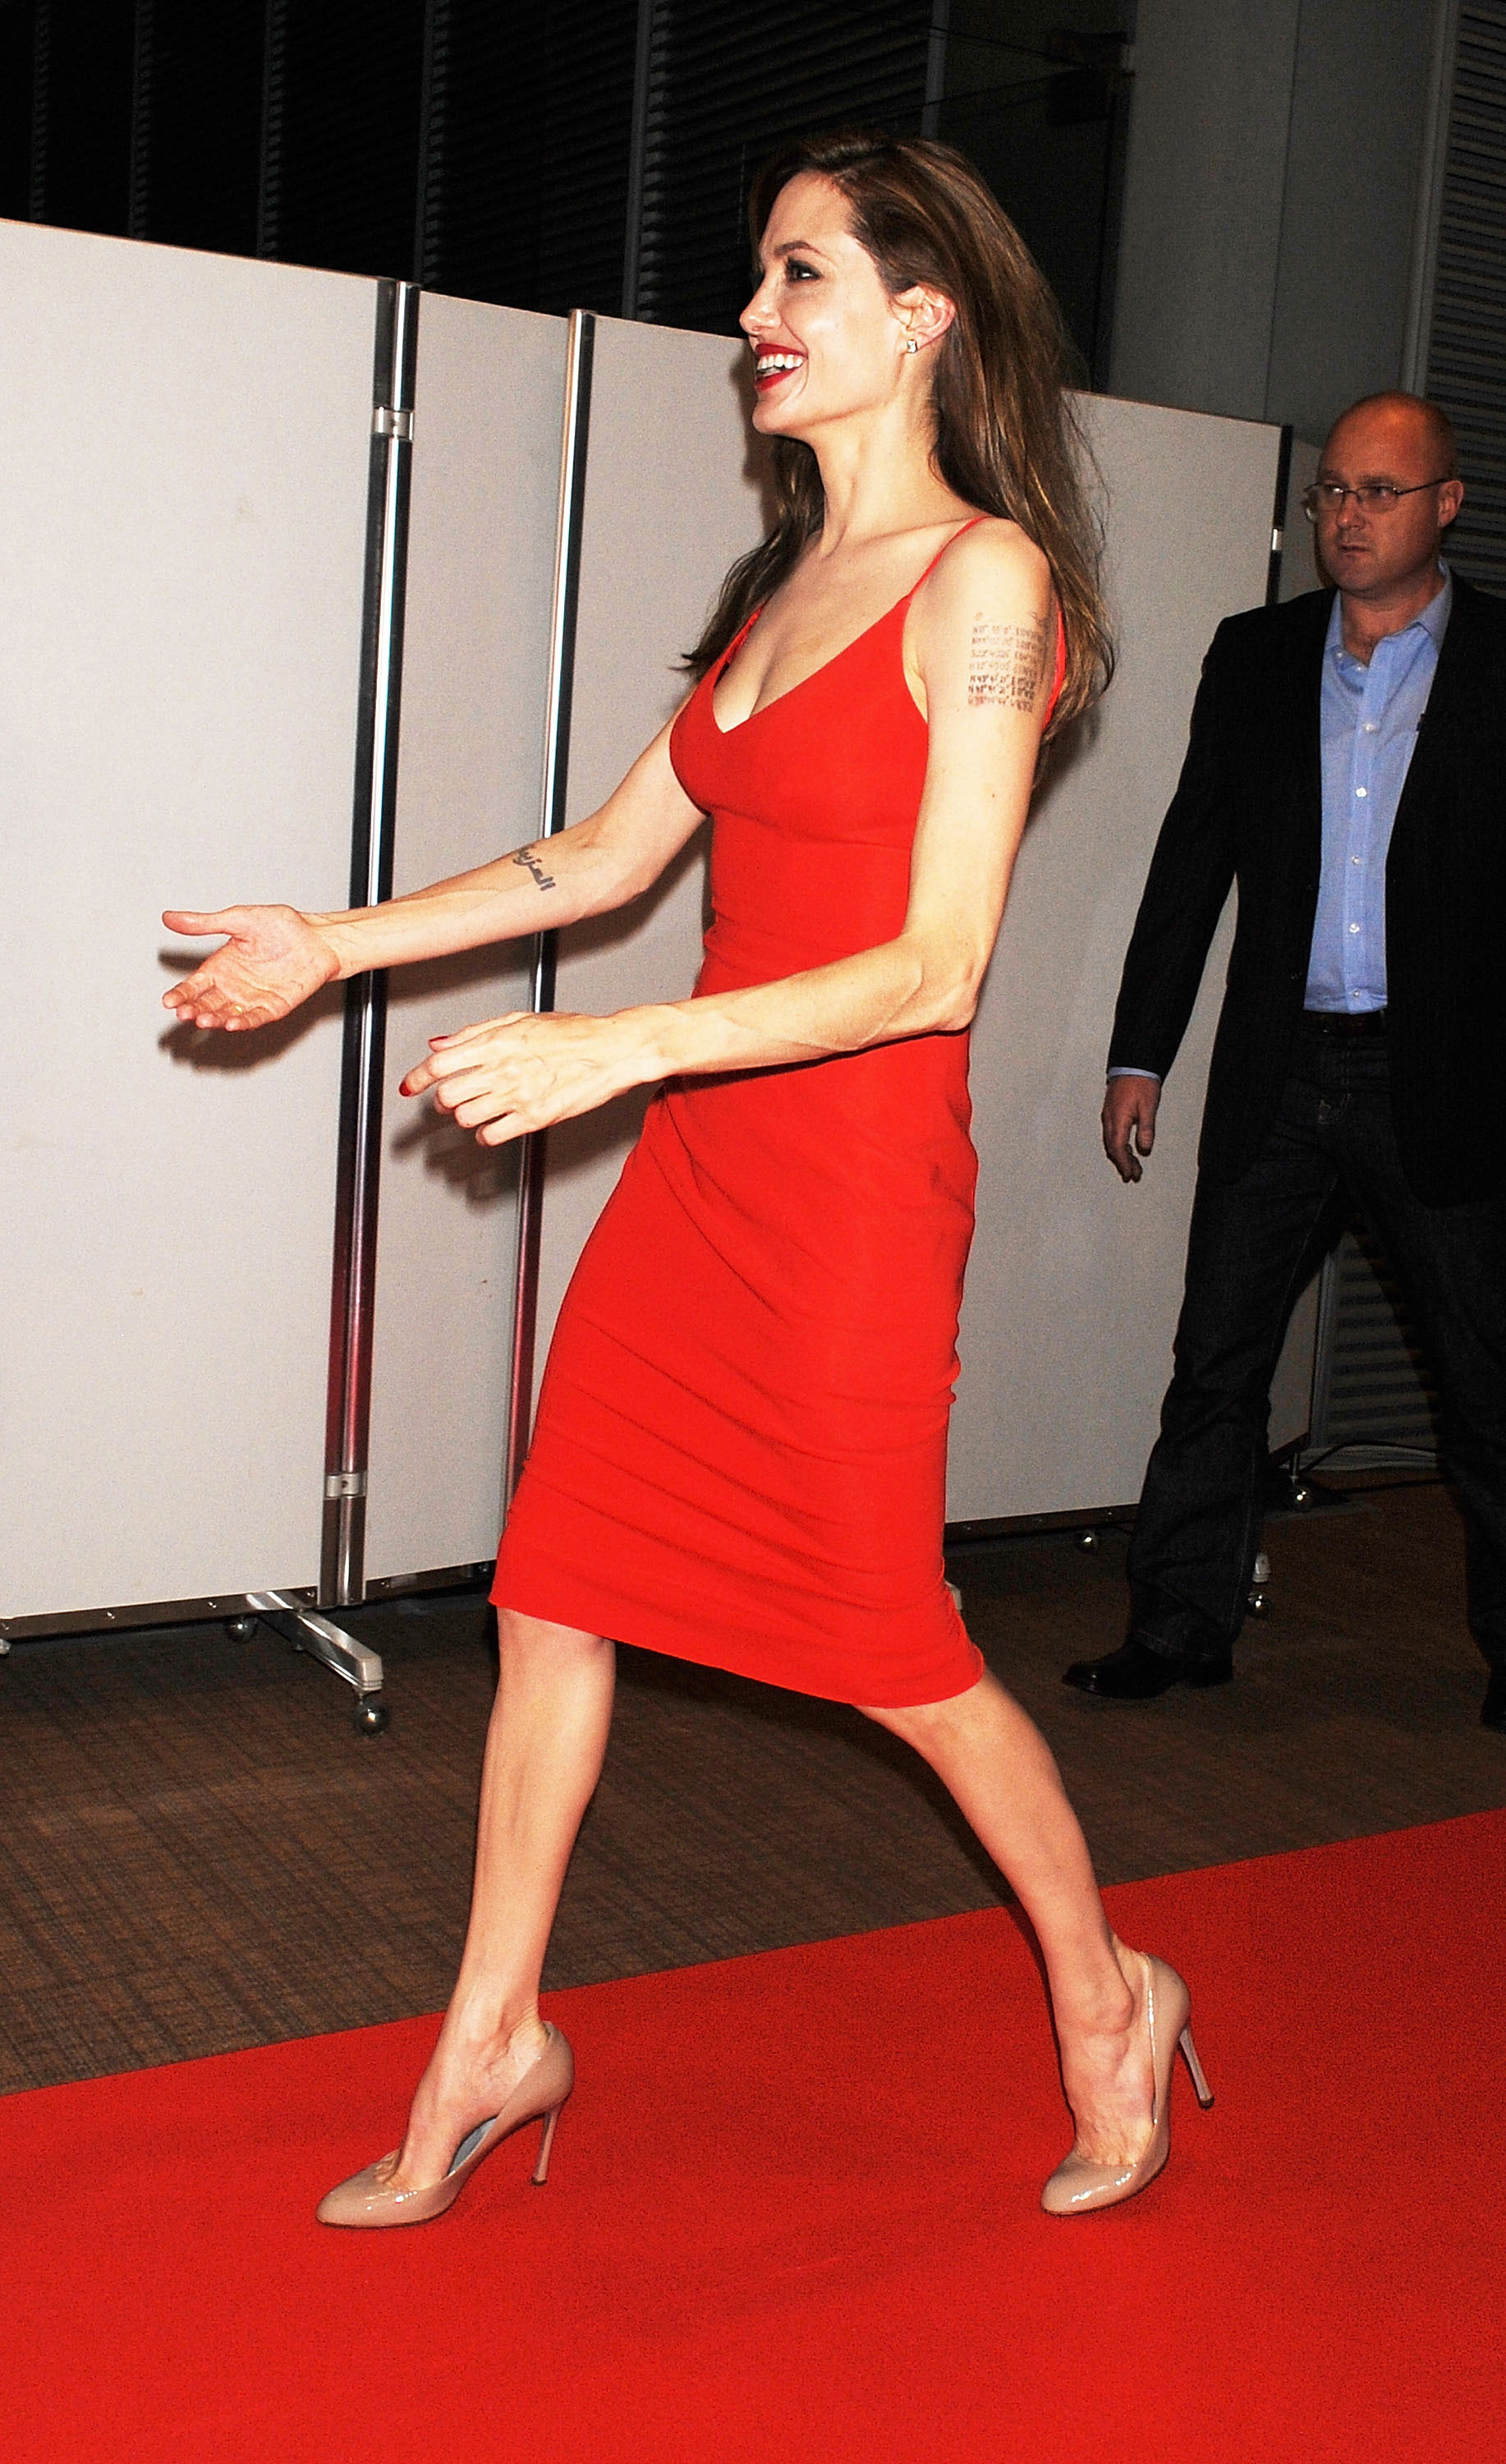 Angelina Jolie Red Dress Candids At Moneyball Premiere